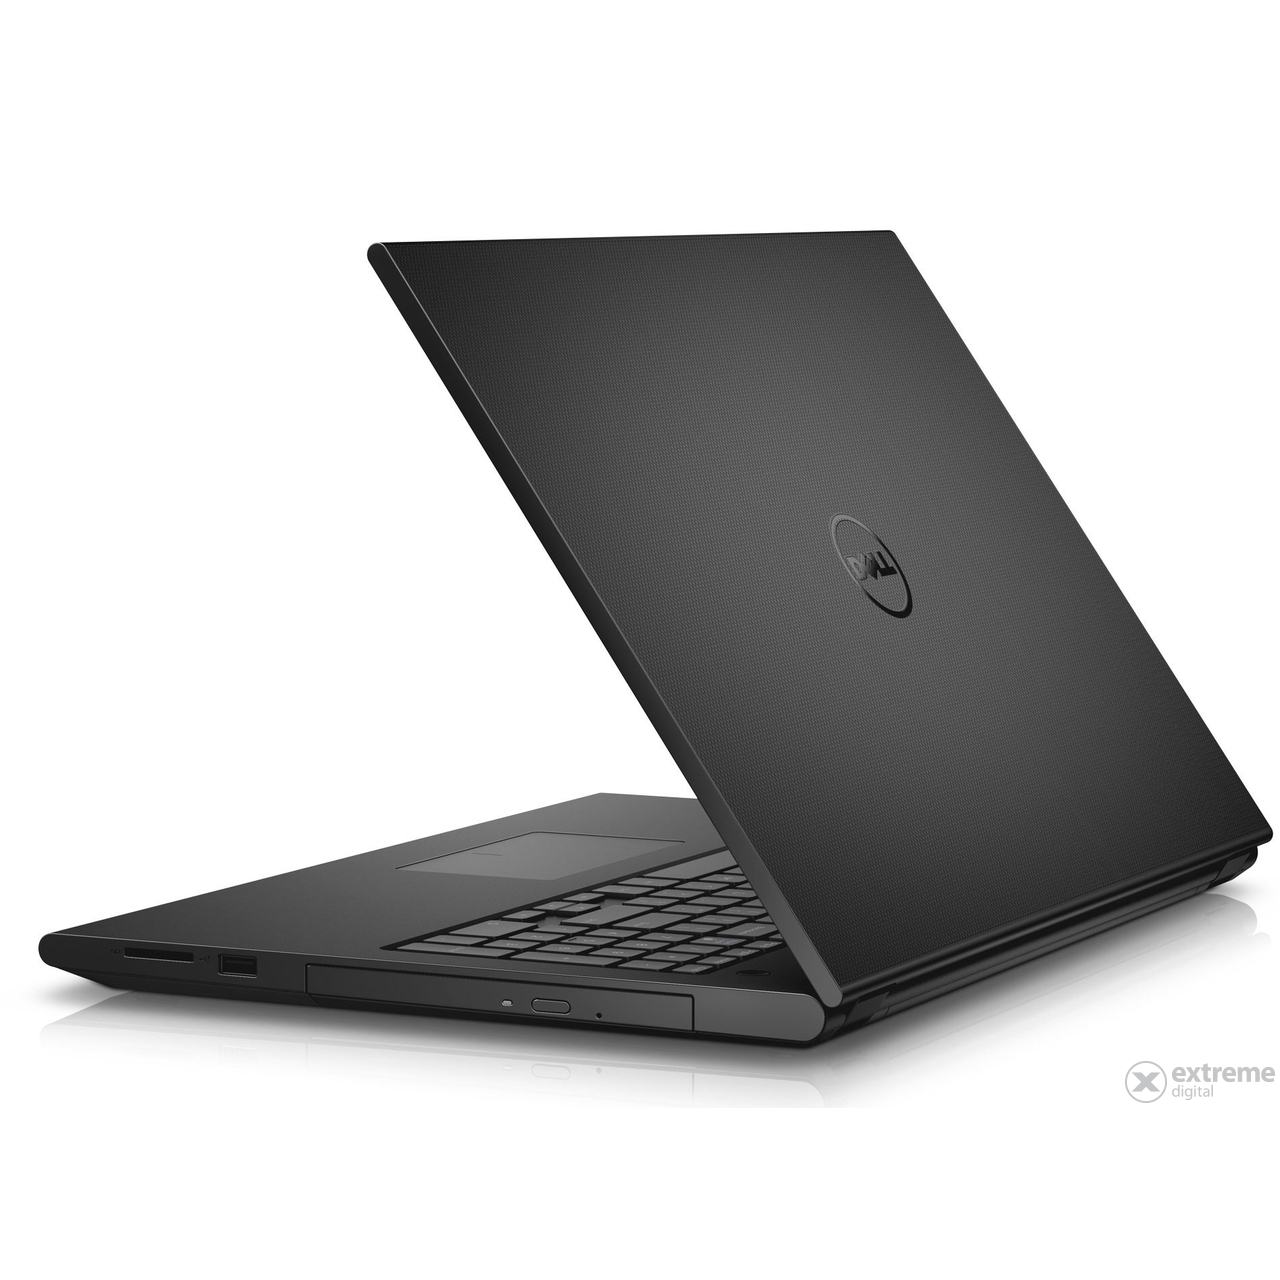 dell-inspiron-3542-171159-notebook-windows-8-1-fekete_f8e14a72.jpg